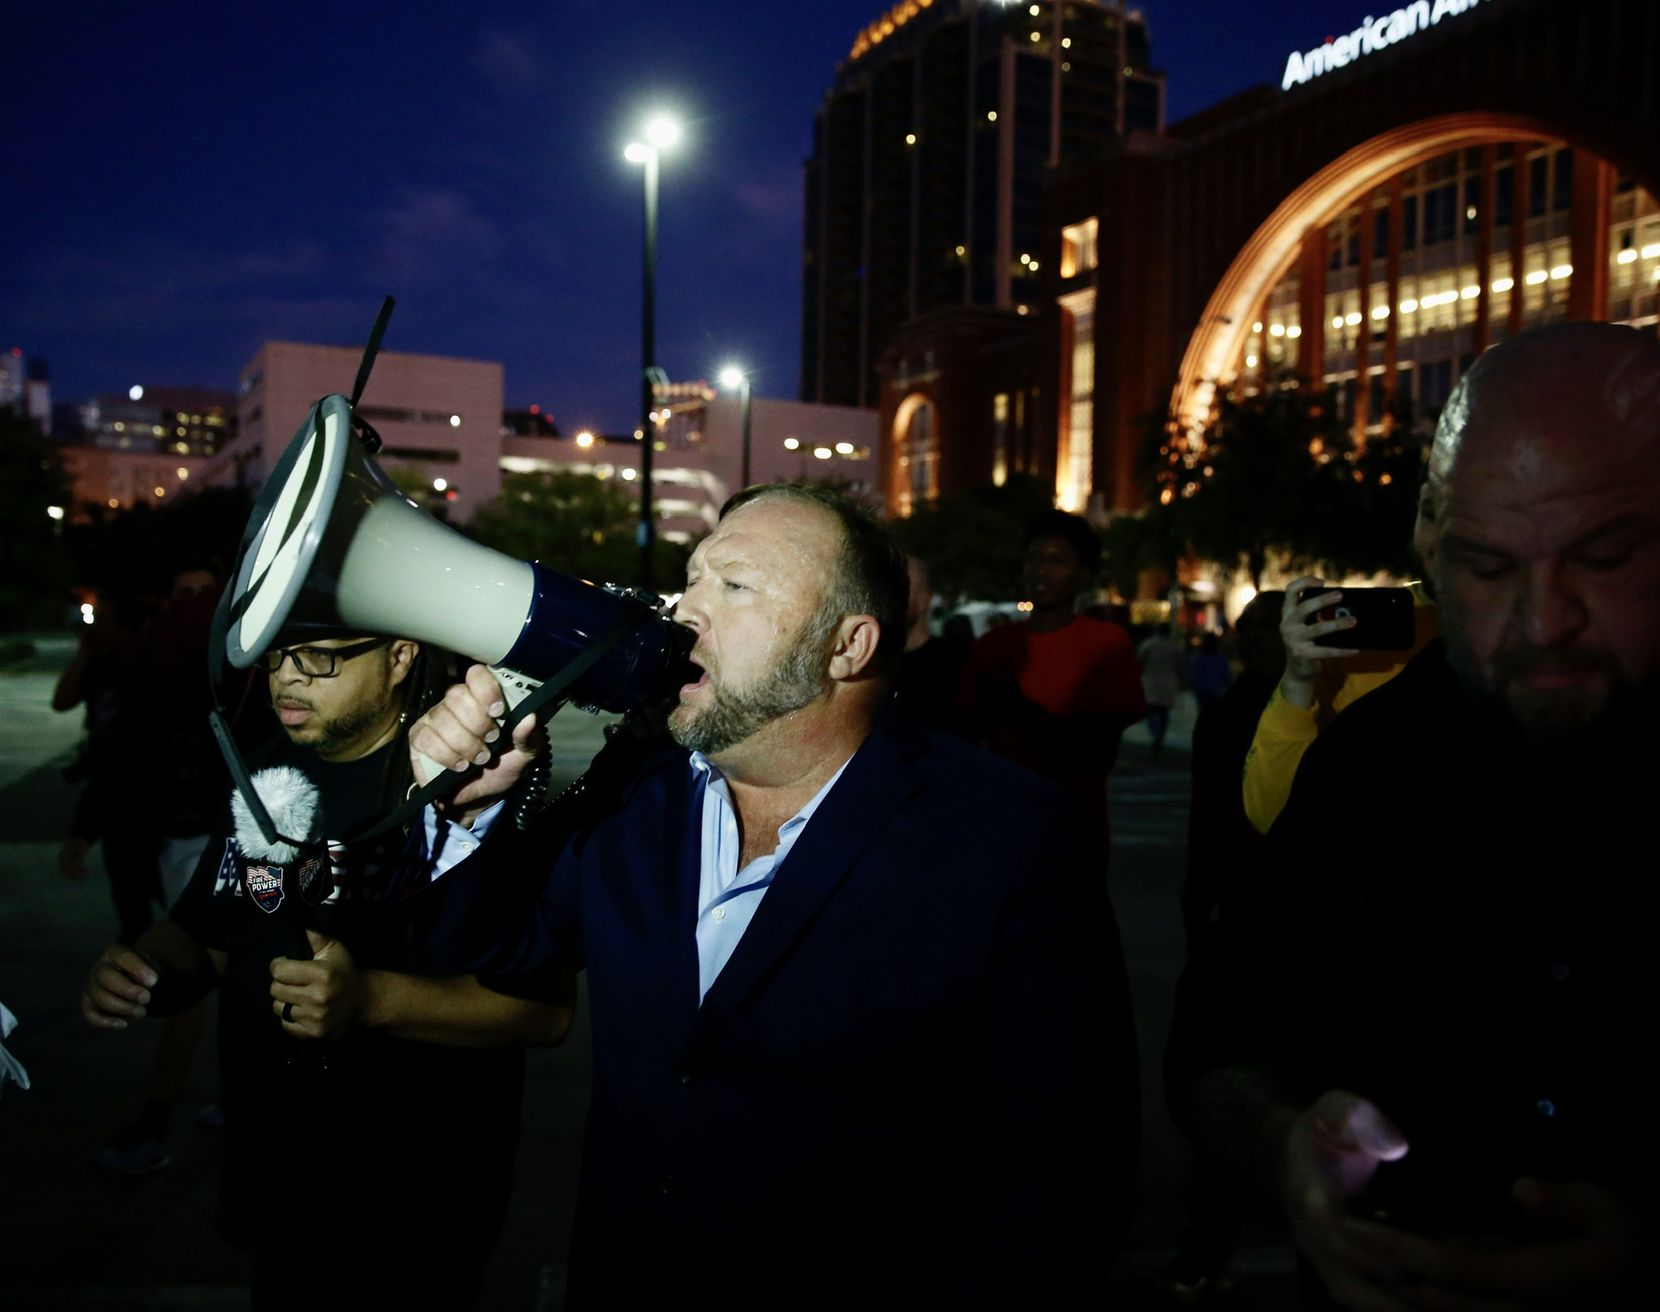 Alex Jones speaks with a bullhorn where  some of the protesters are at the site of the Keep America Great Rally for President Donald Trump at the American Airlines Center in Dallas, on Thursday, October 17, 2019.